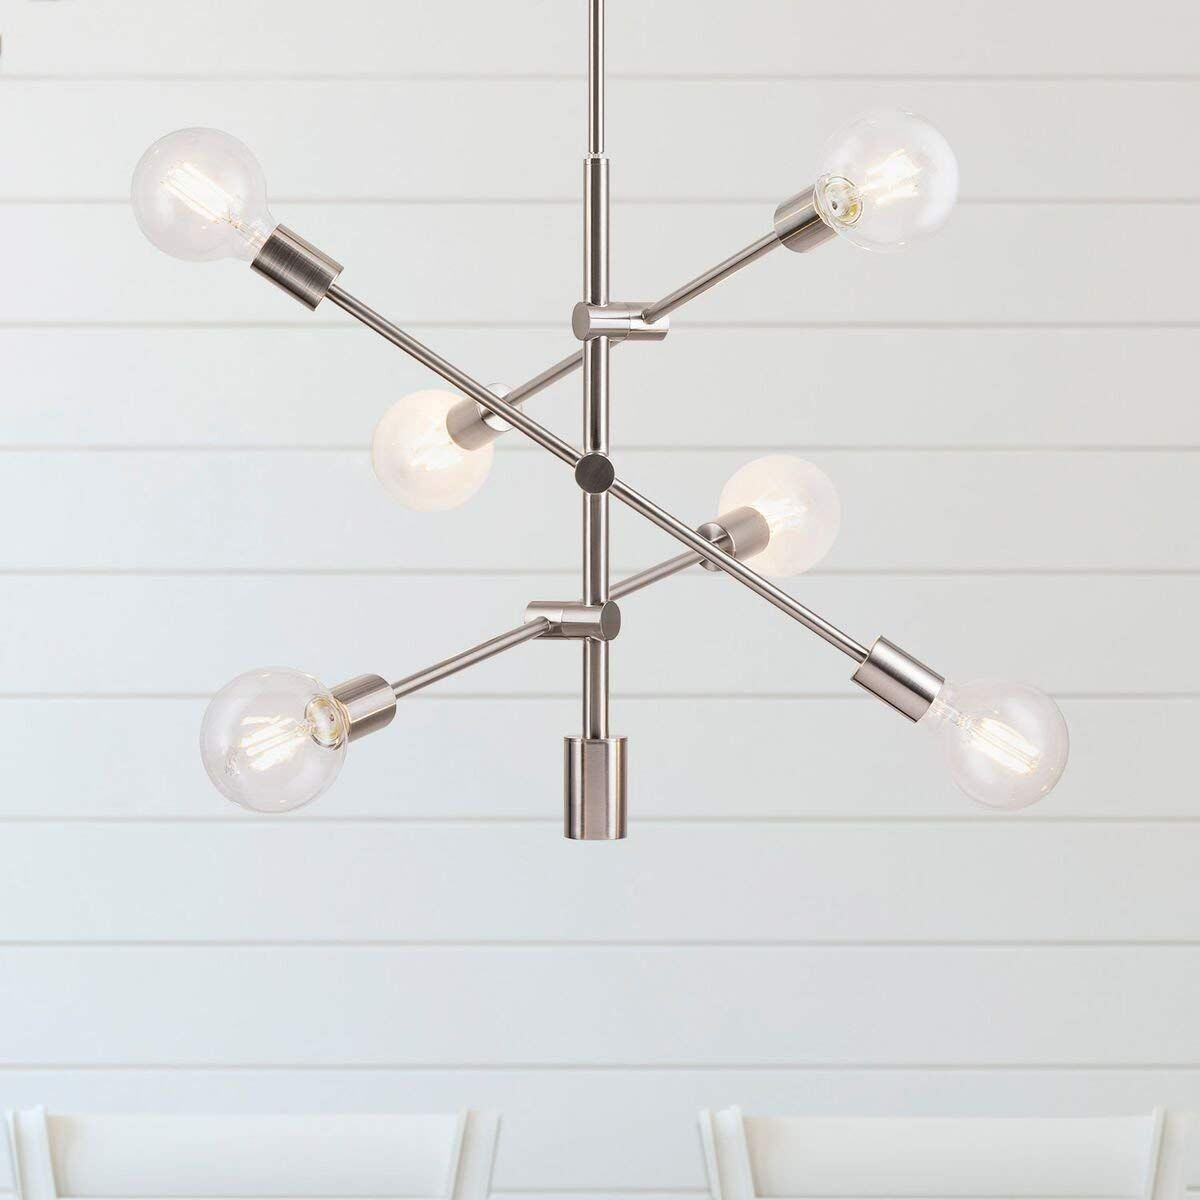 Marabella Led Sputnik Chandelier Light Fixture, Brushed With Regard To Eladia 6 Light Sputnik Chandeliers (View 14 of 30)